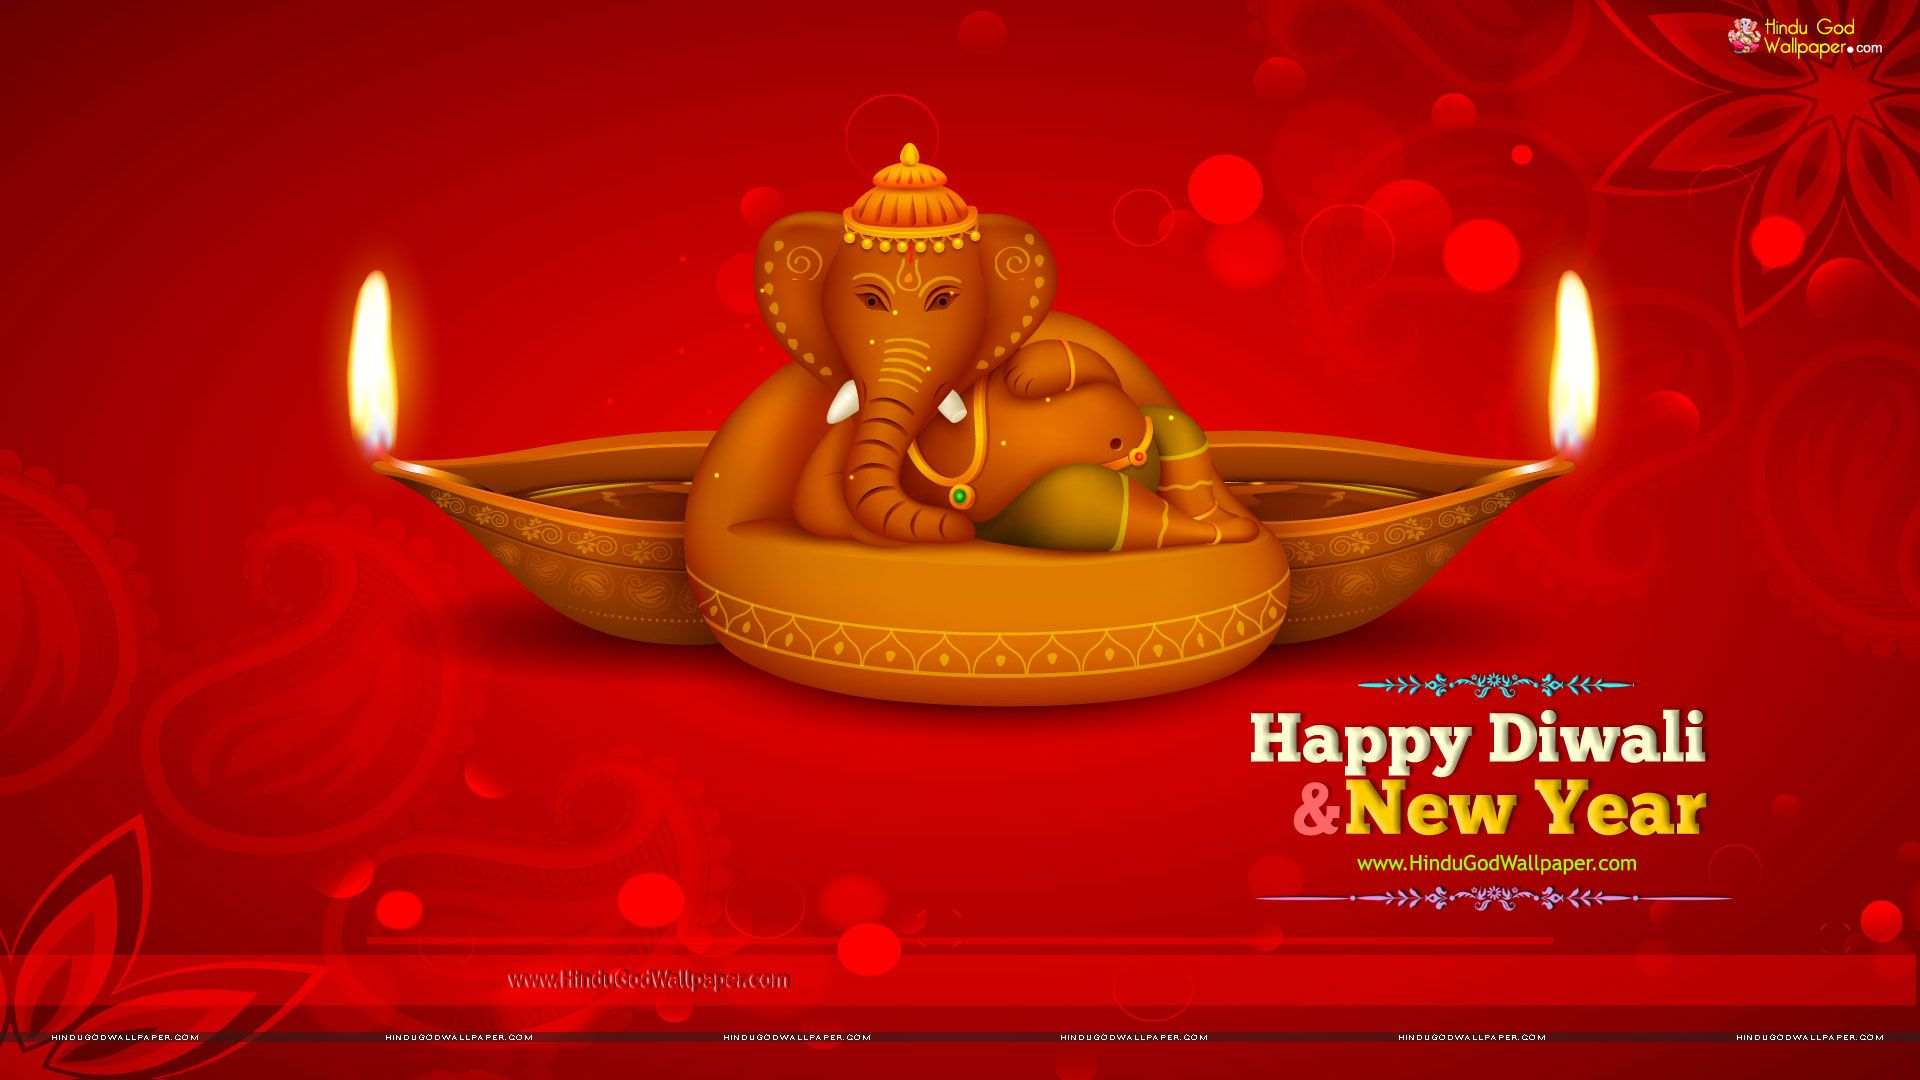 Diwali New Year Wallpaper Hd Free Download Diwali Wallpapers